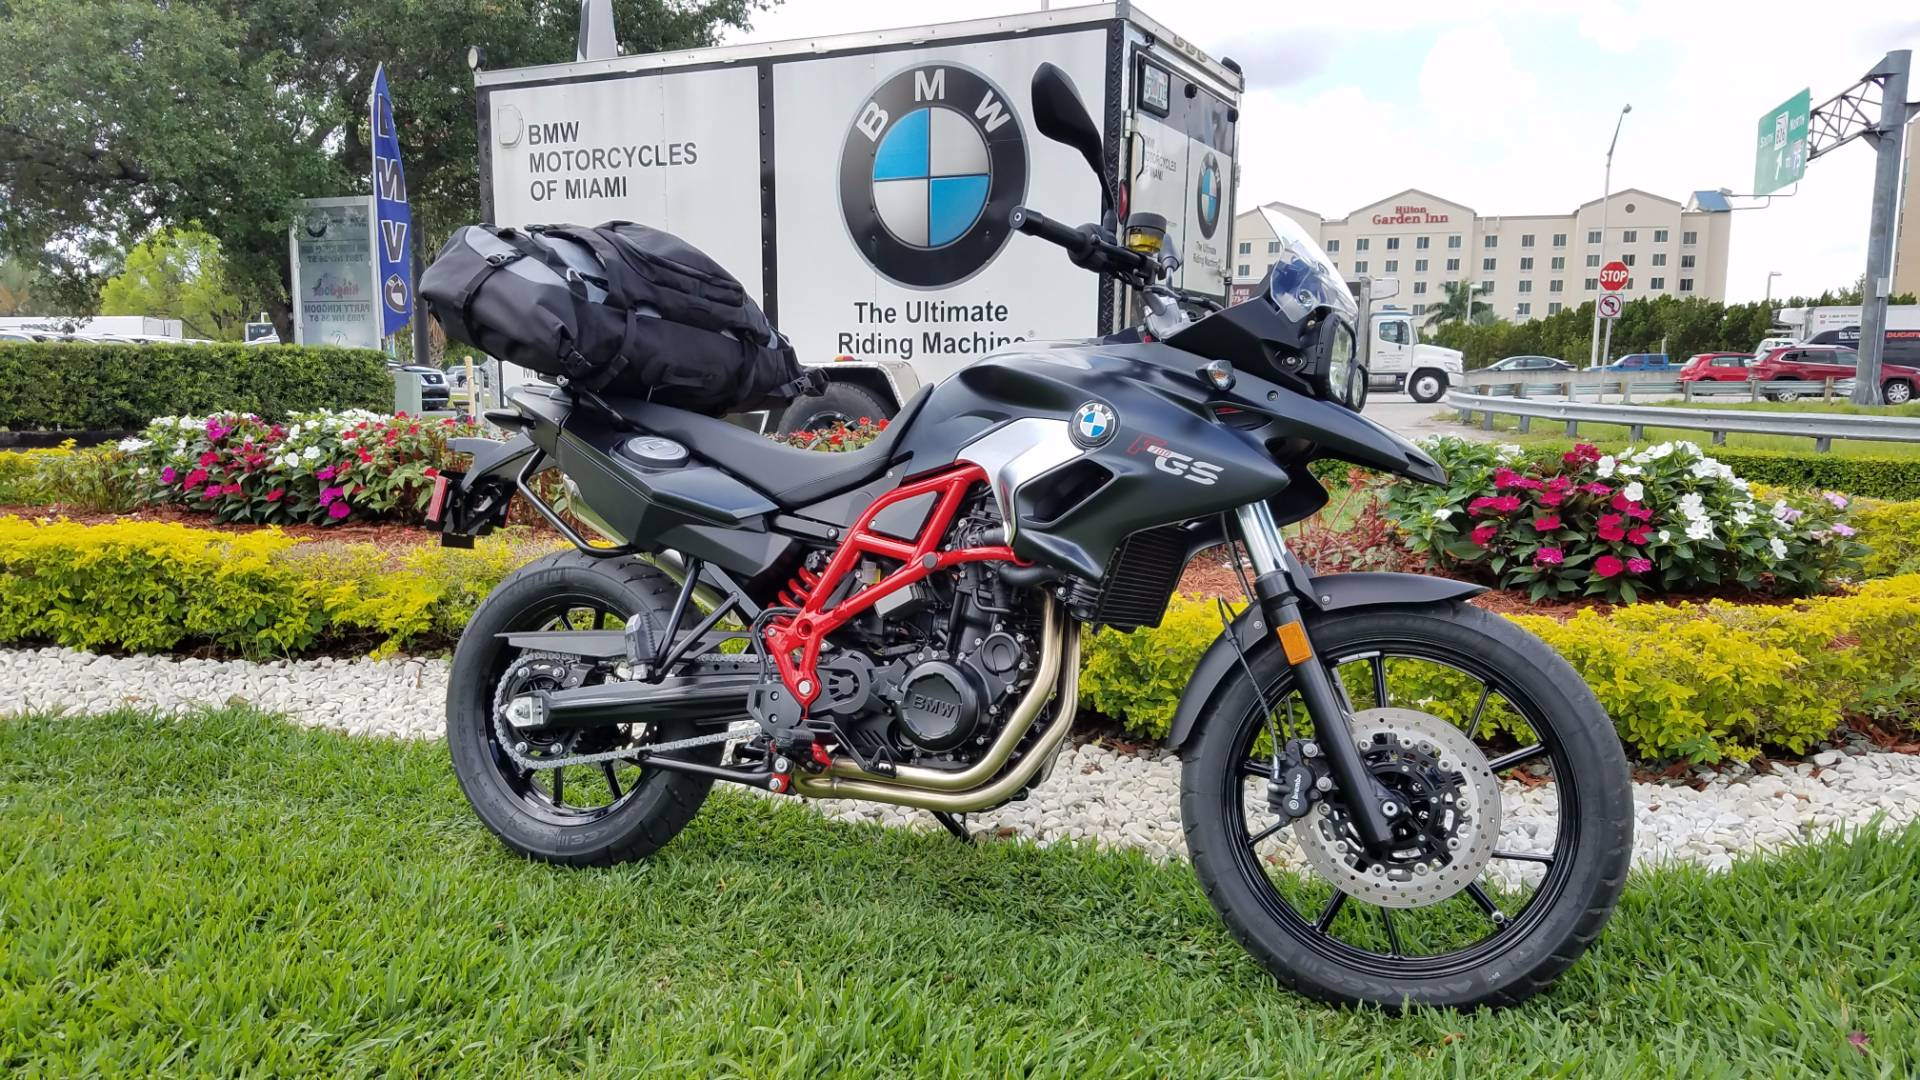 New 2017 BMW F 700 GS For Sale free Atacama Duffel Top Bag, BMW F 700 GS For Sale, BMW Motorcycle F 700 GS, new BMW f 700 gs, New BMW Motorcycle